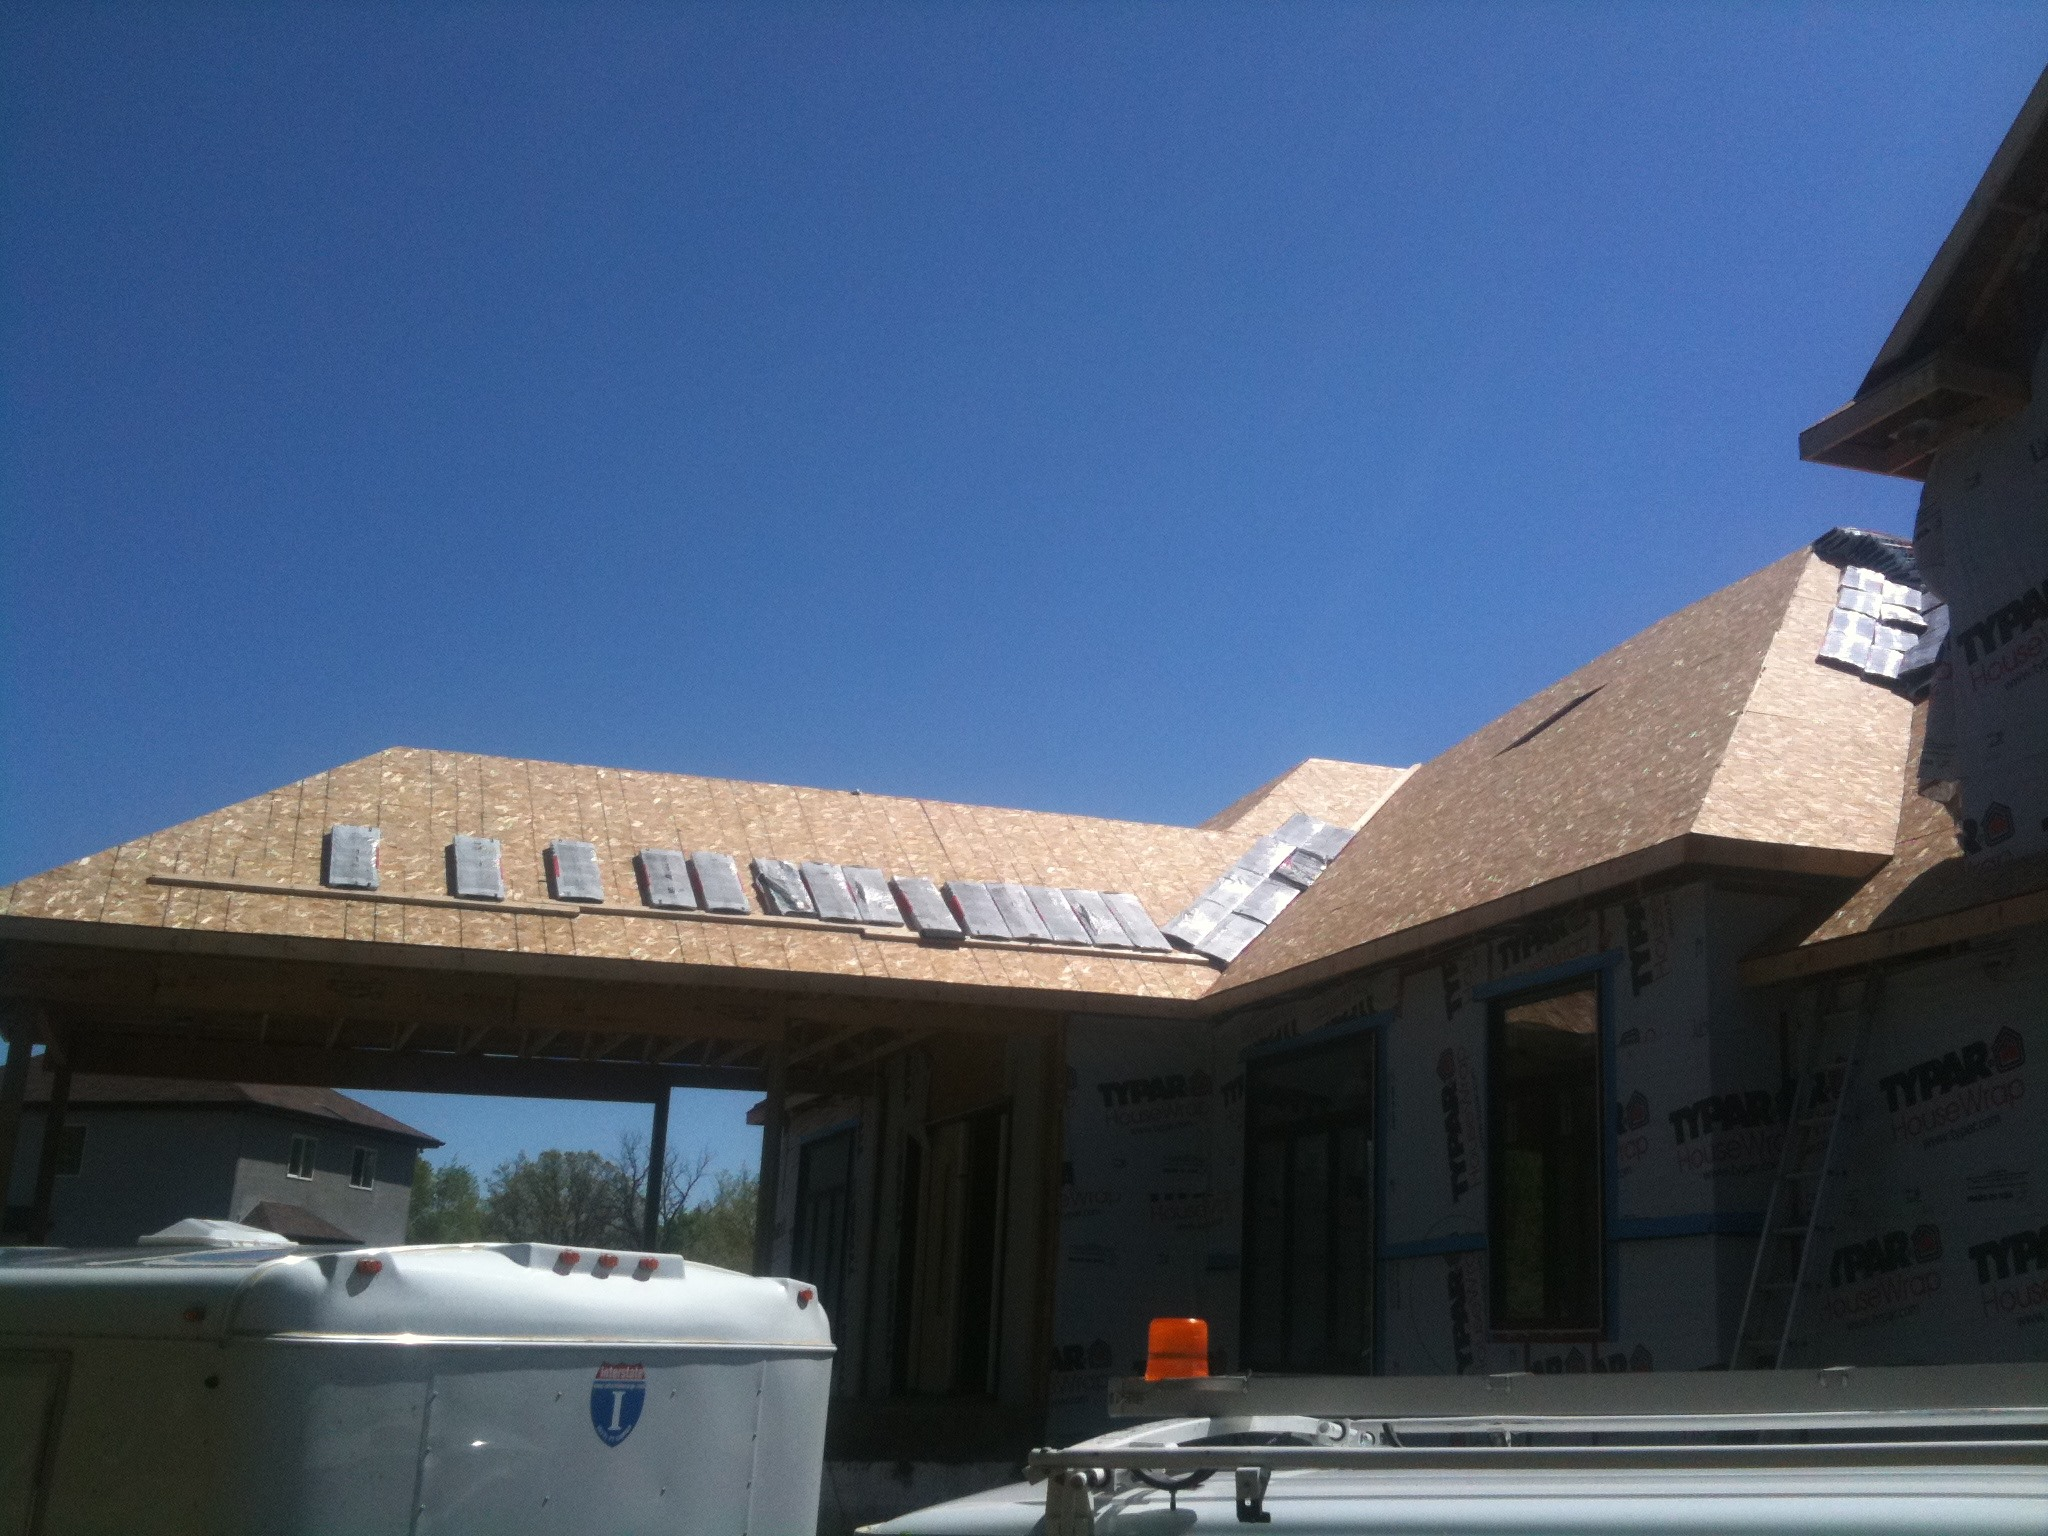 klz roof install in progress